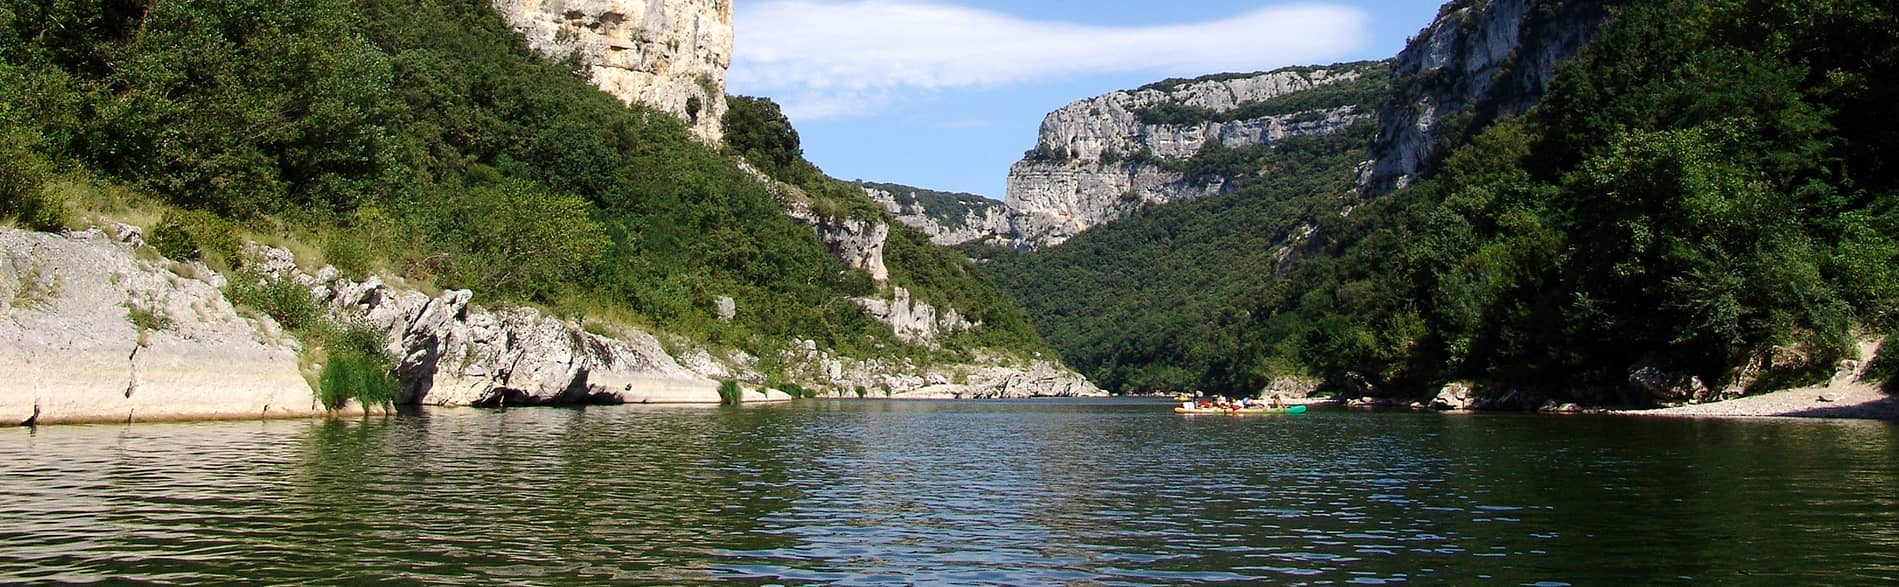 Entete Sainte Remeze Ardeche 3